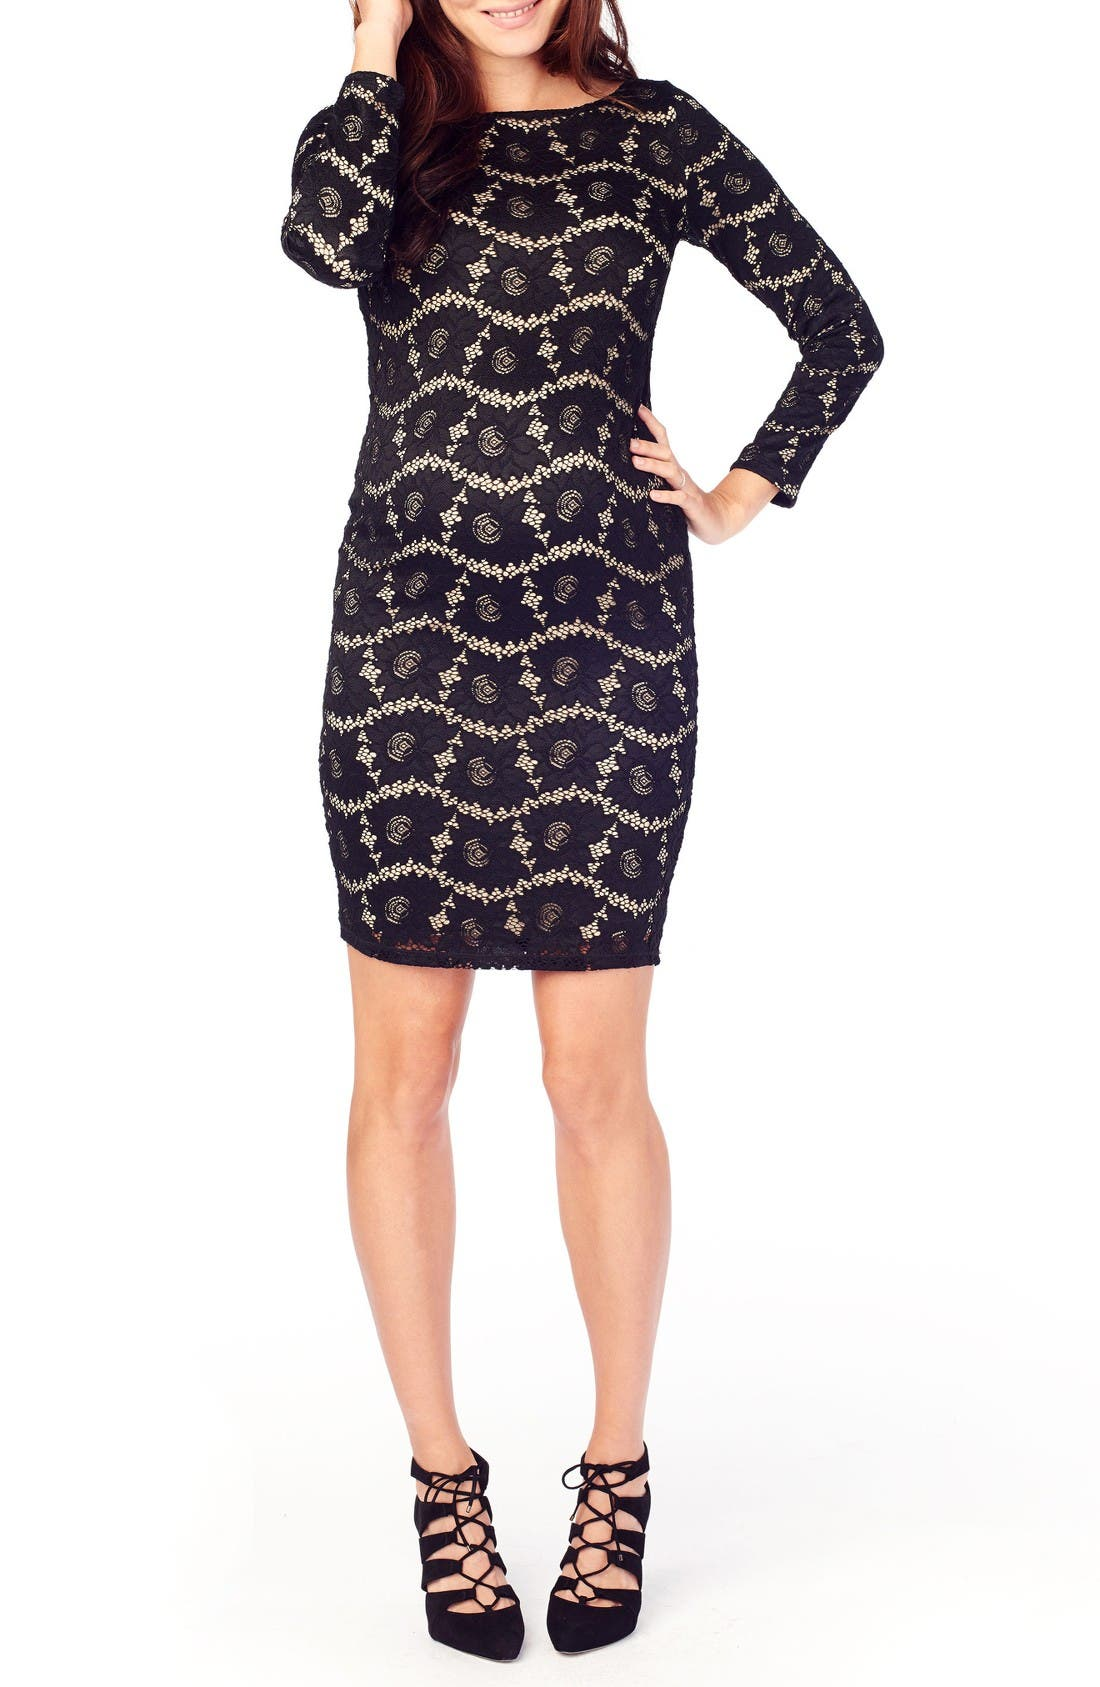 Womens Wedding Guest Maternity Dresses Nordstrom